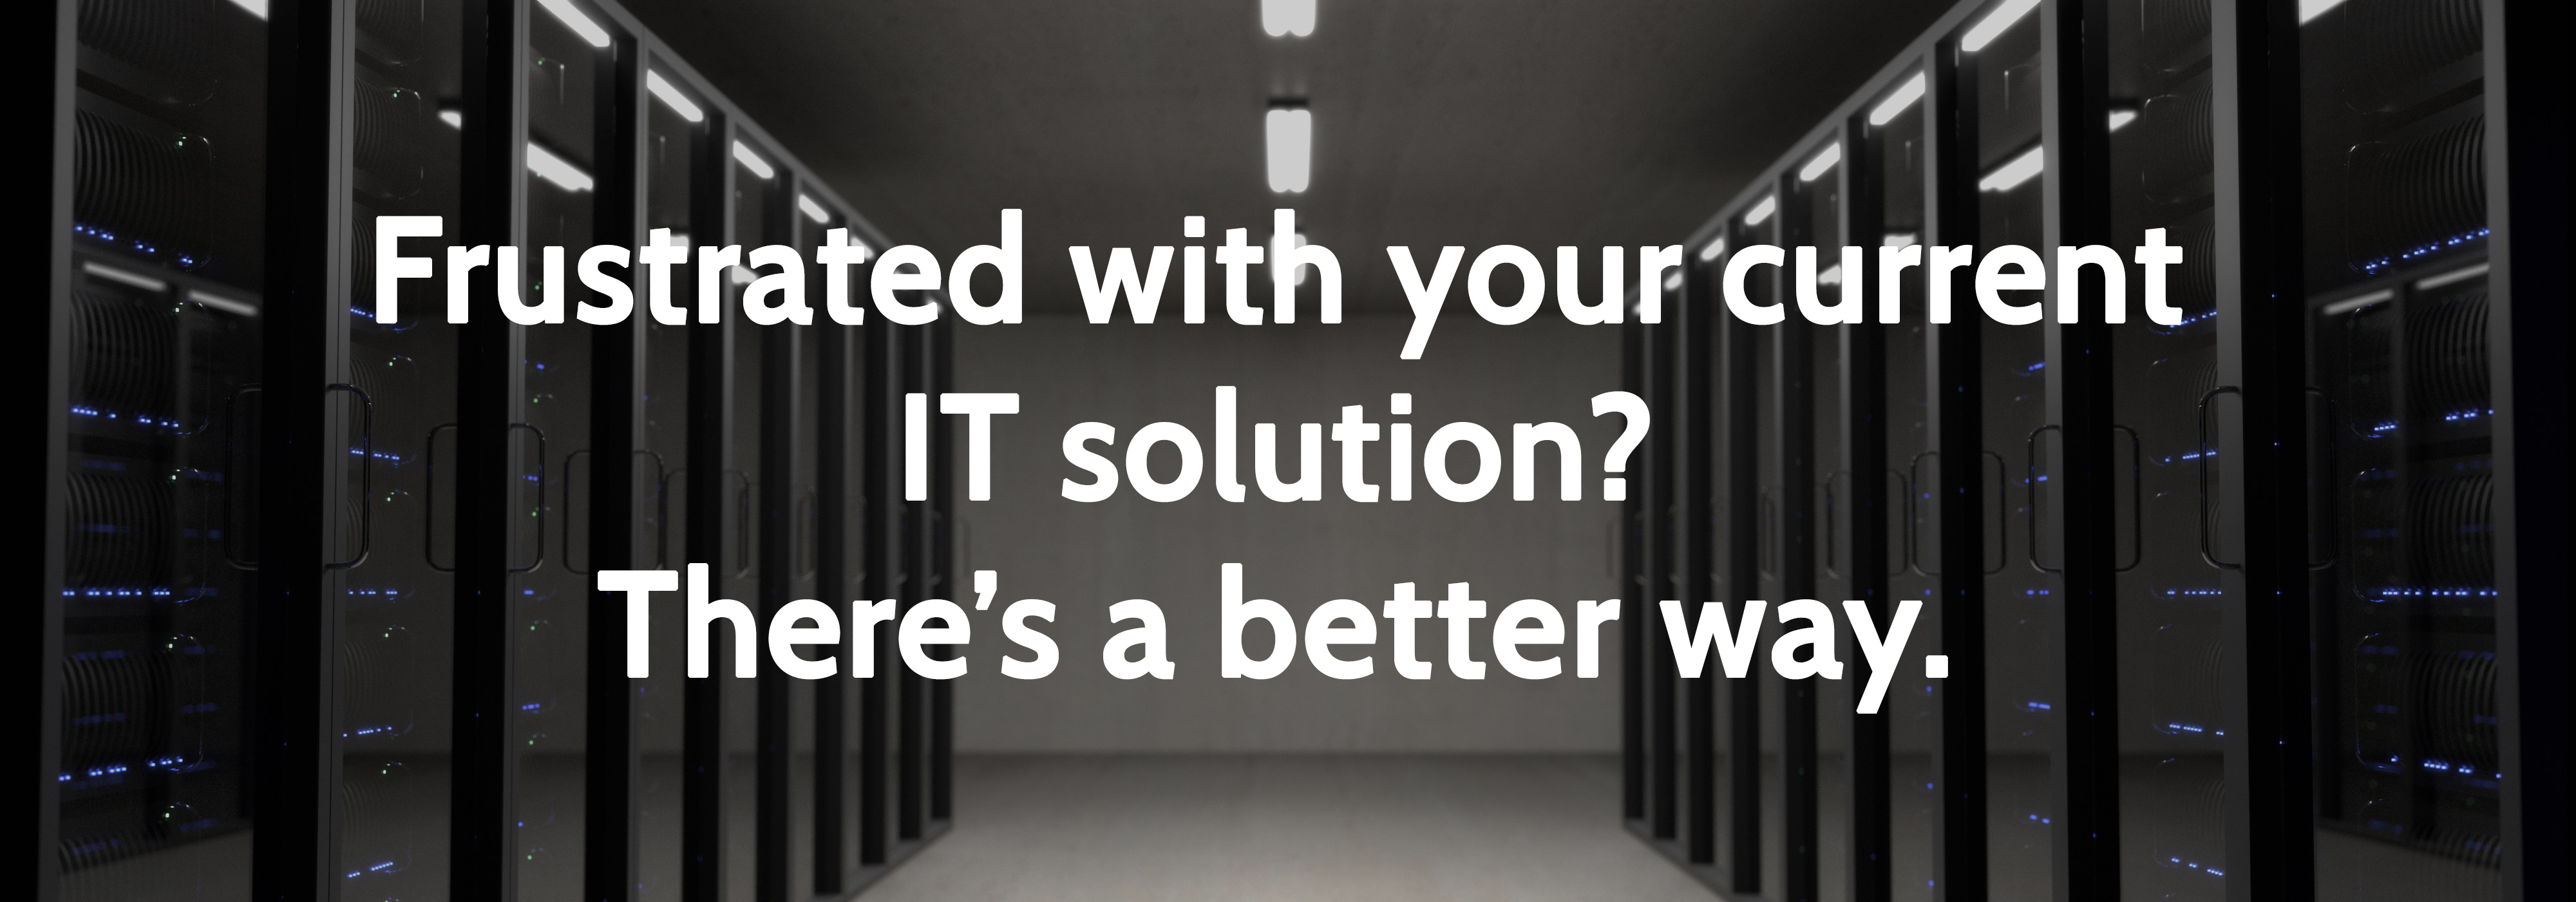 A room full of network servers. Text that reads: Frustrated with your current IT solution? There's a better way.